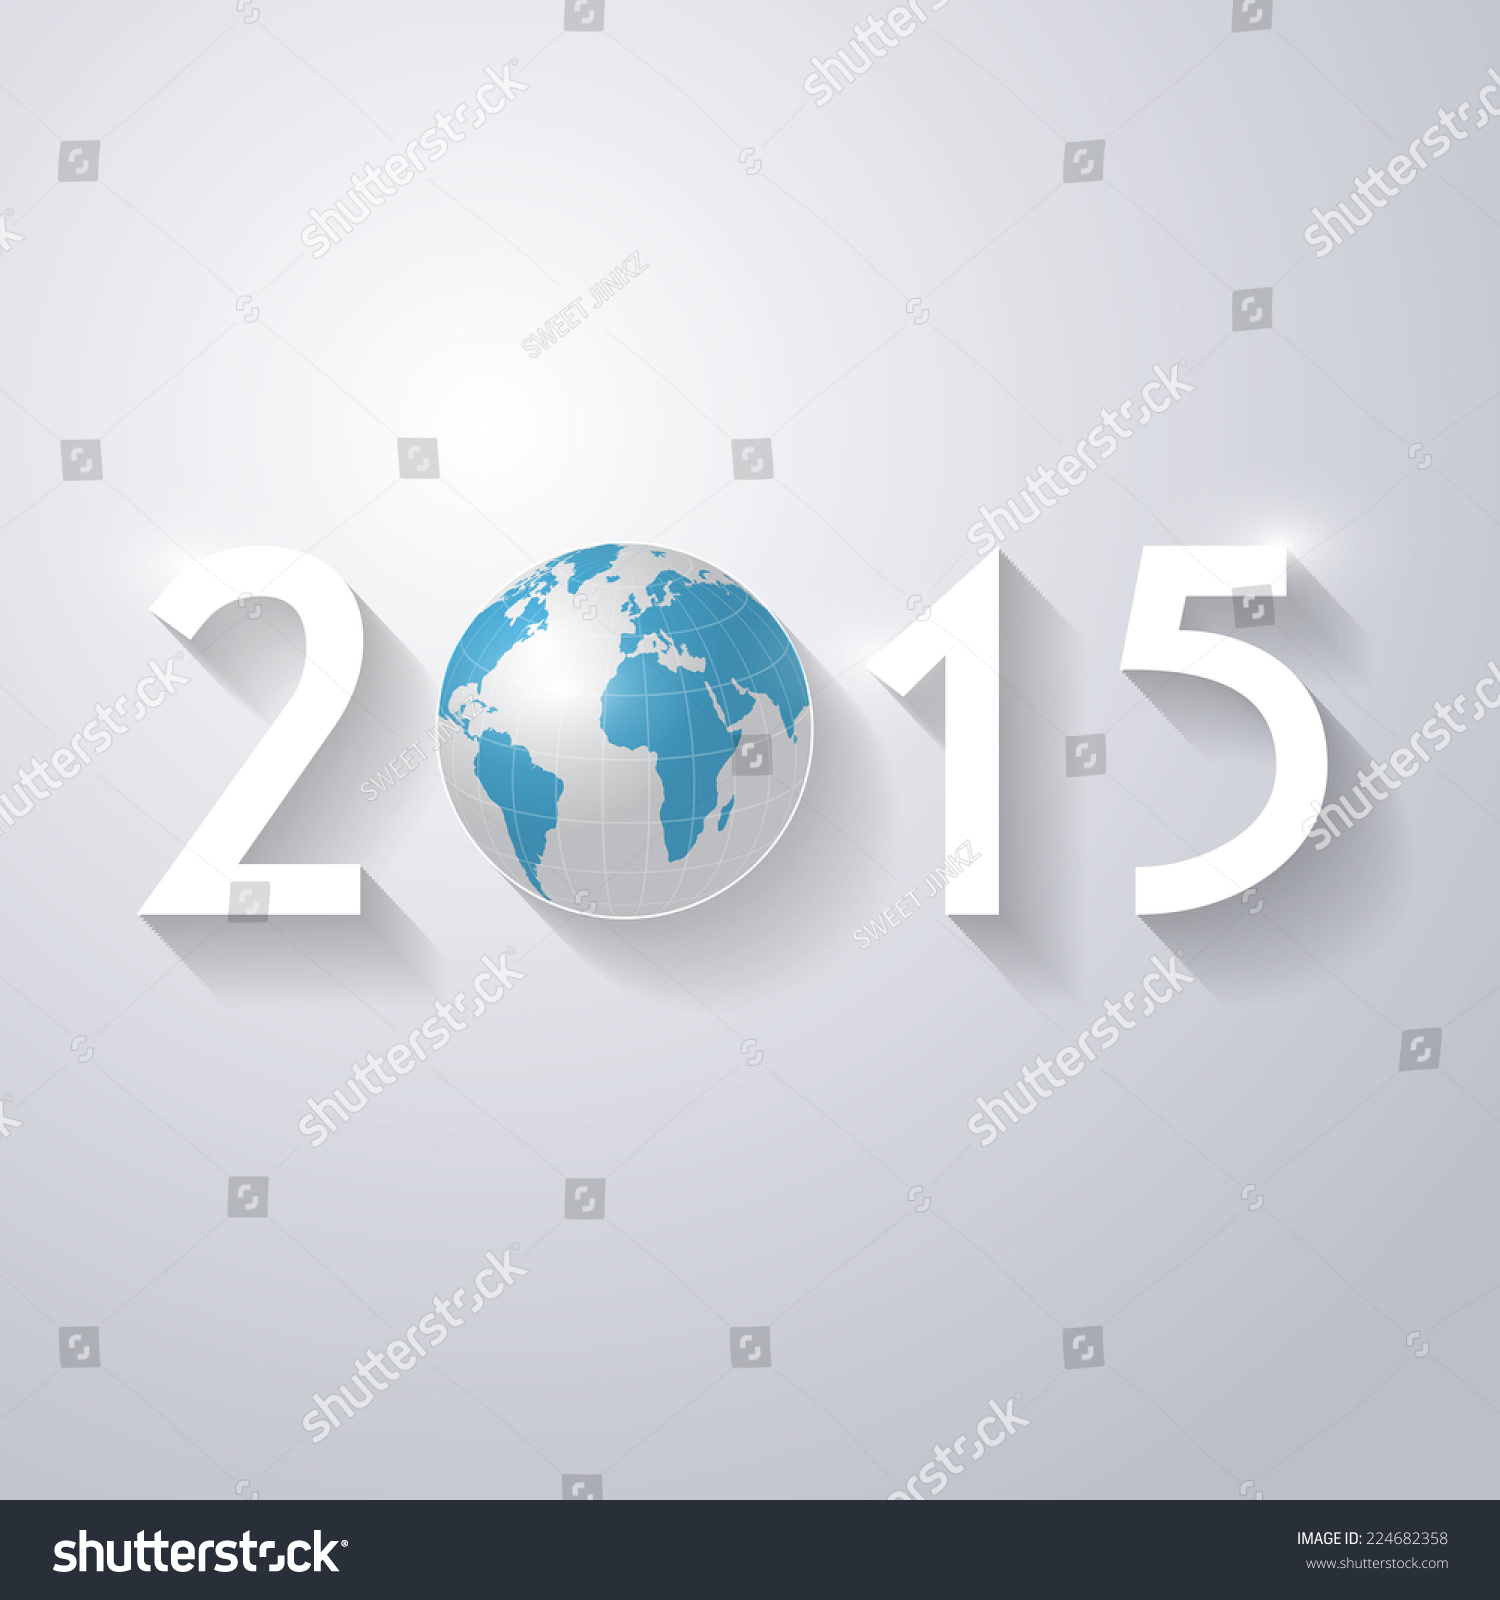 Vector modern simple happy new year stock vector 224682358 vector modern simple happy new year 2015 and 3d world map wallpaper with a long shadow gumiabroncs Gallery